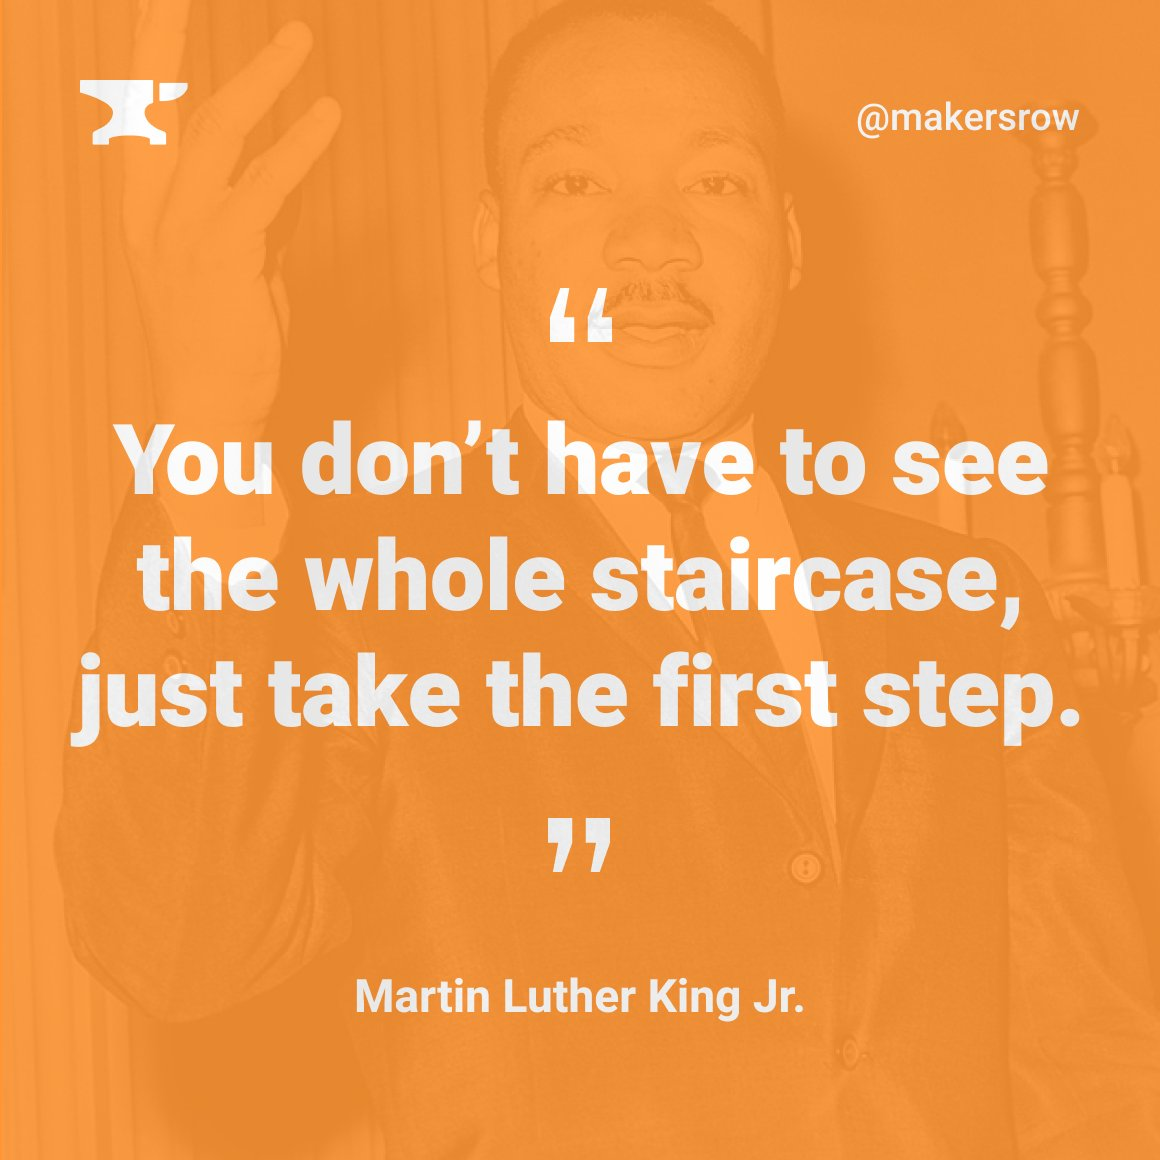 Take the first step! . . . #mlk  #martinlutherkingjr  #fridayfeels #inspiration #motivationalquote #makersrow<br>http://pic.twitter.com/IH3svcQ4ow